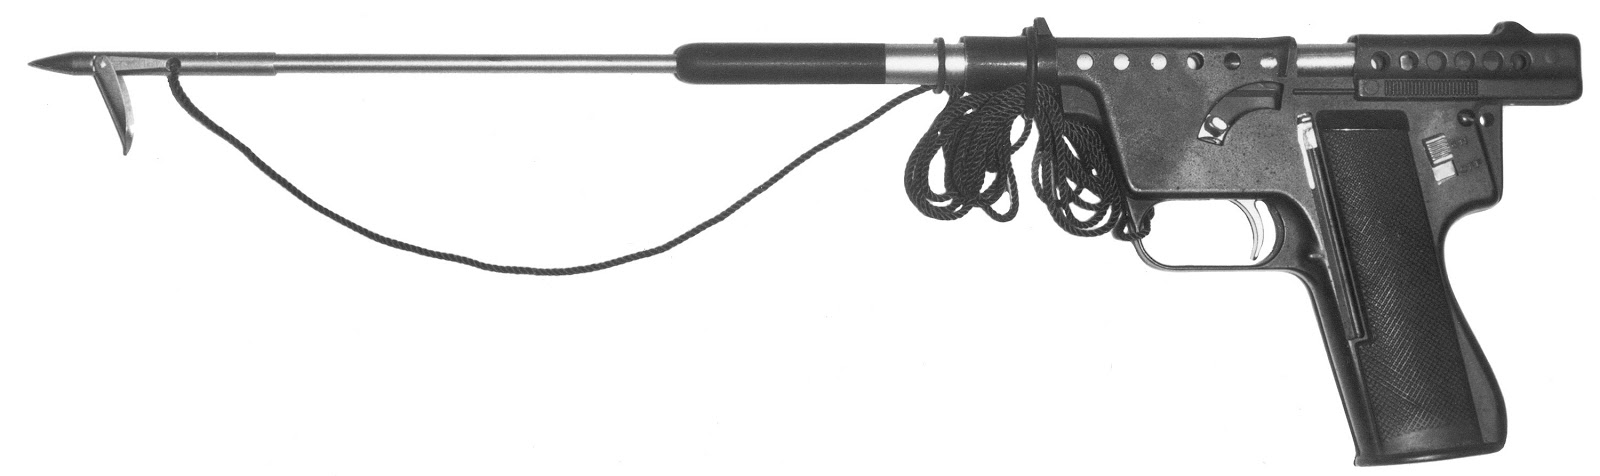 mark i model b gyrojet pistol survival kit